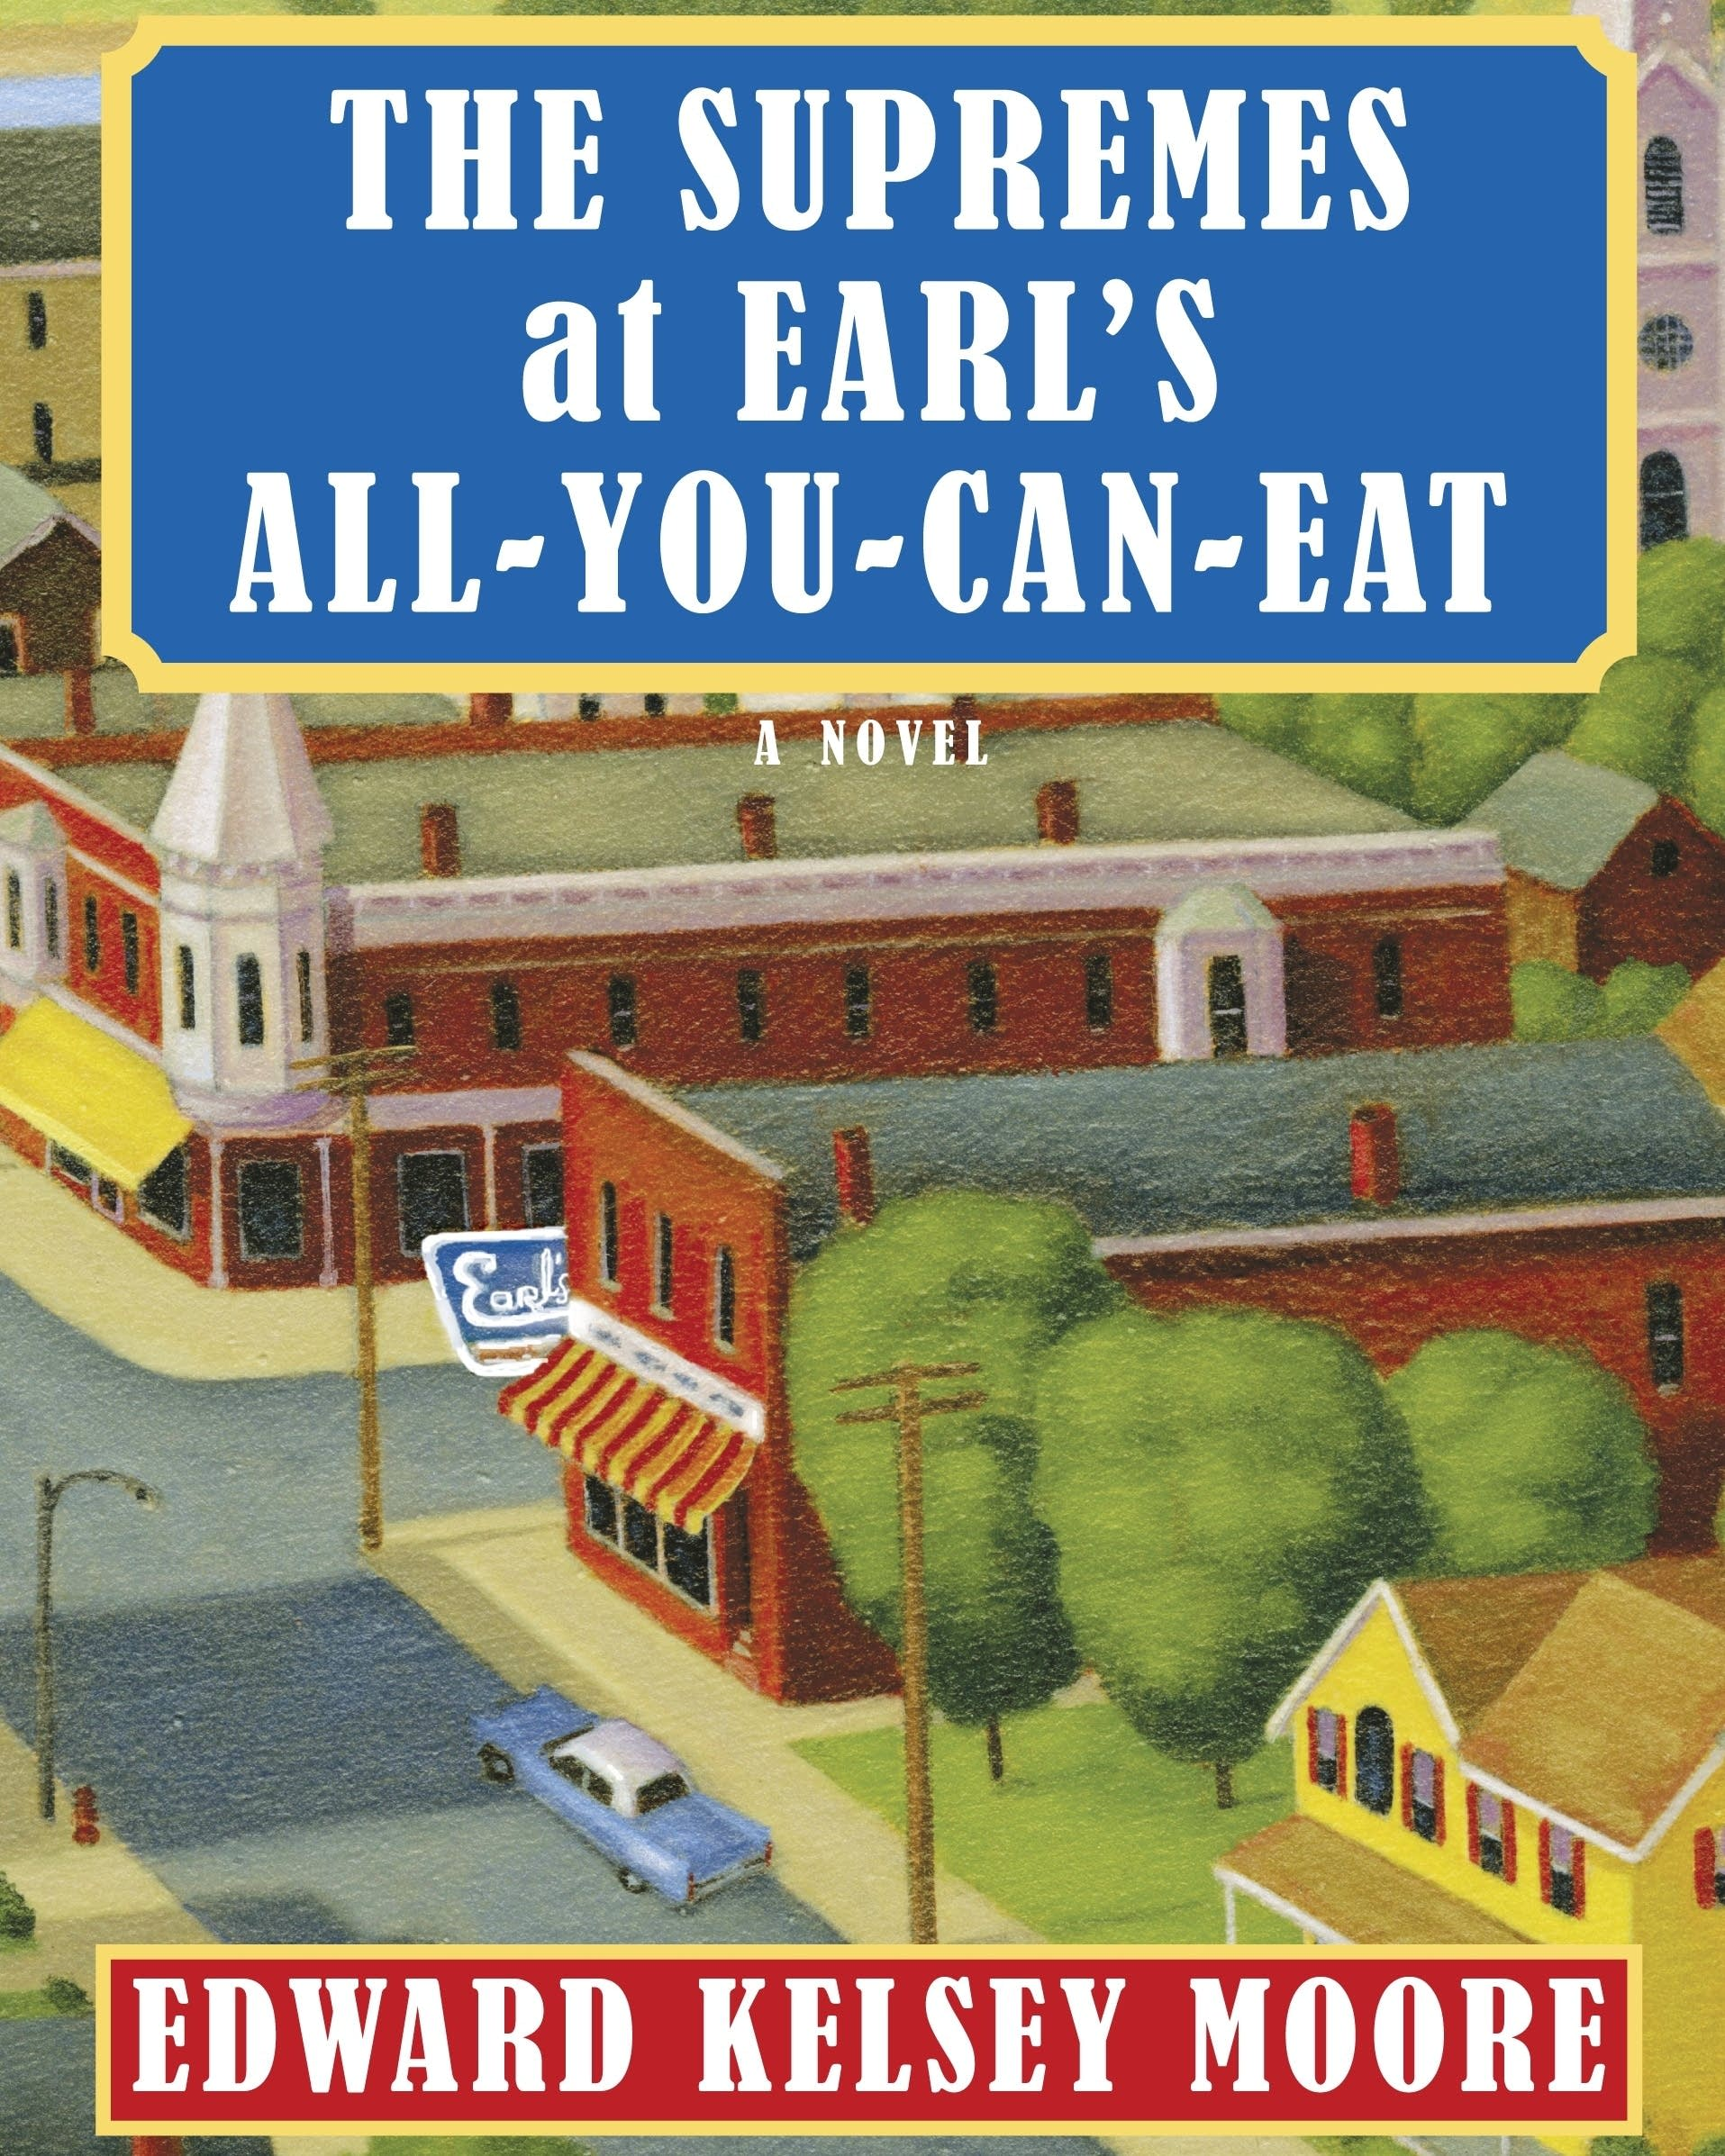 The Supremes at Earl's All-You-Can-Eat' book cover